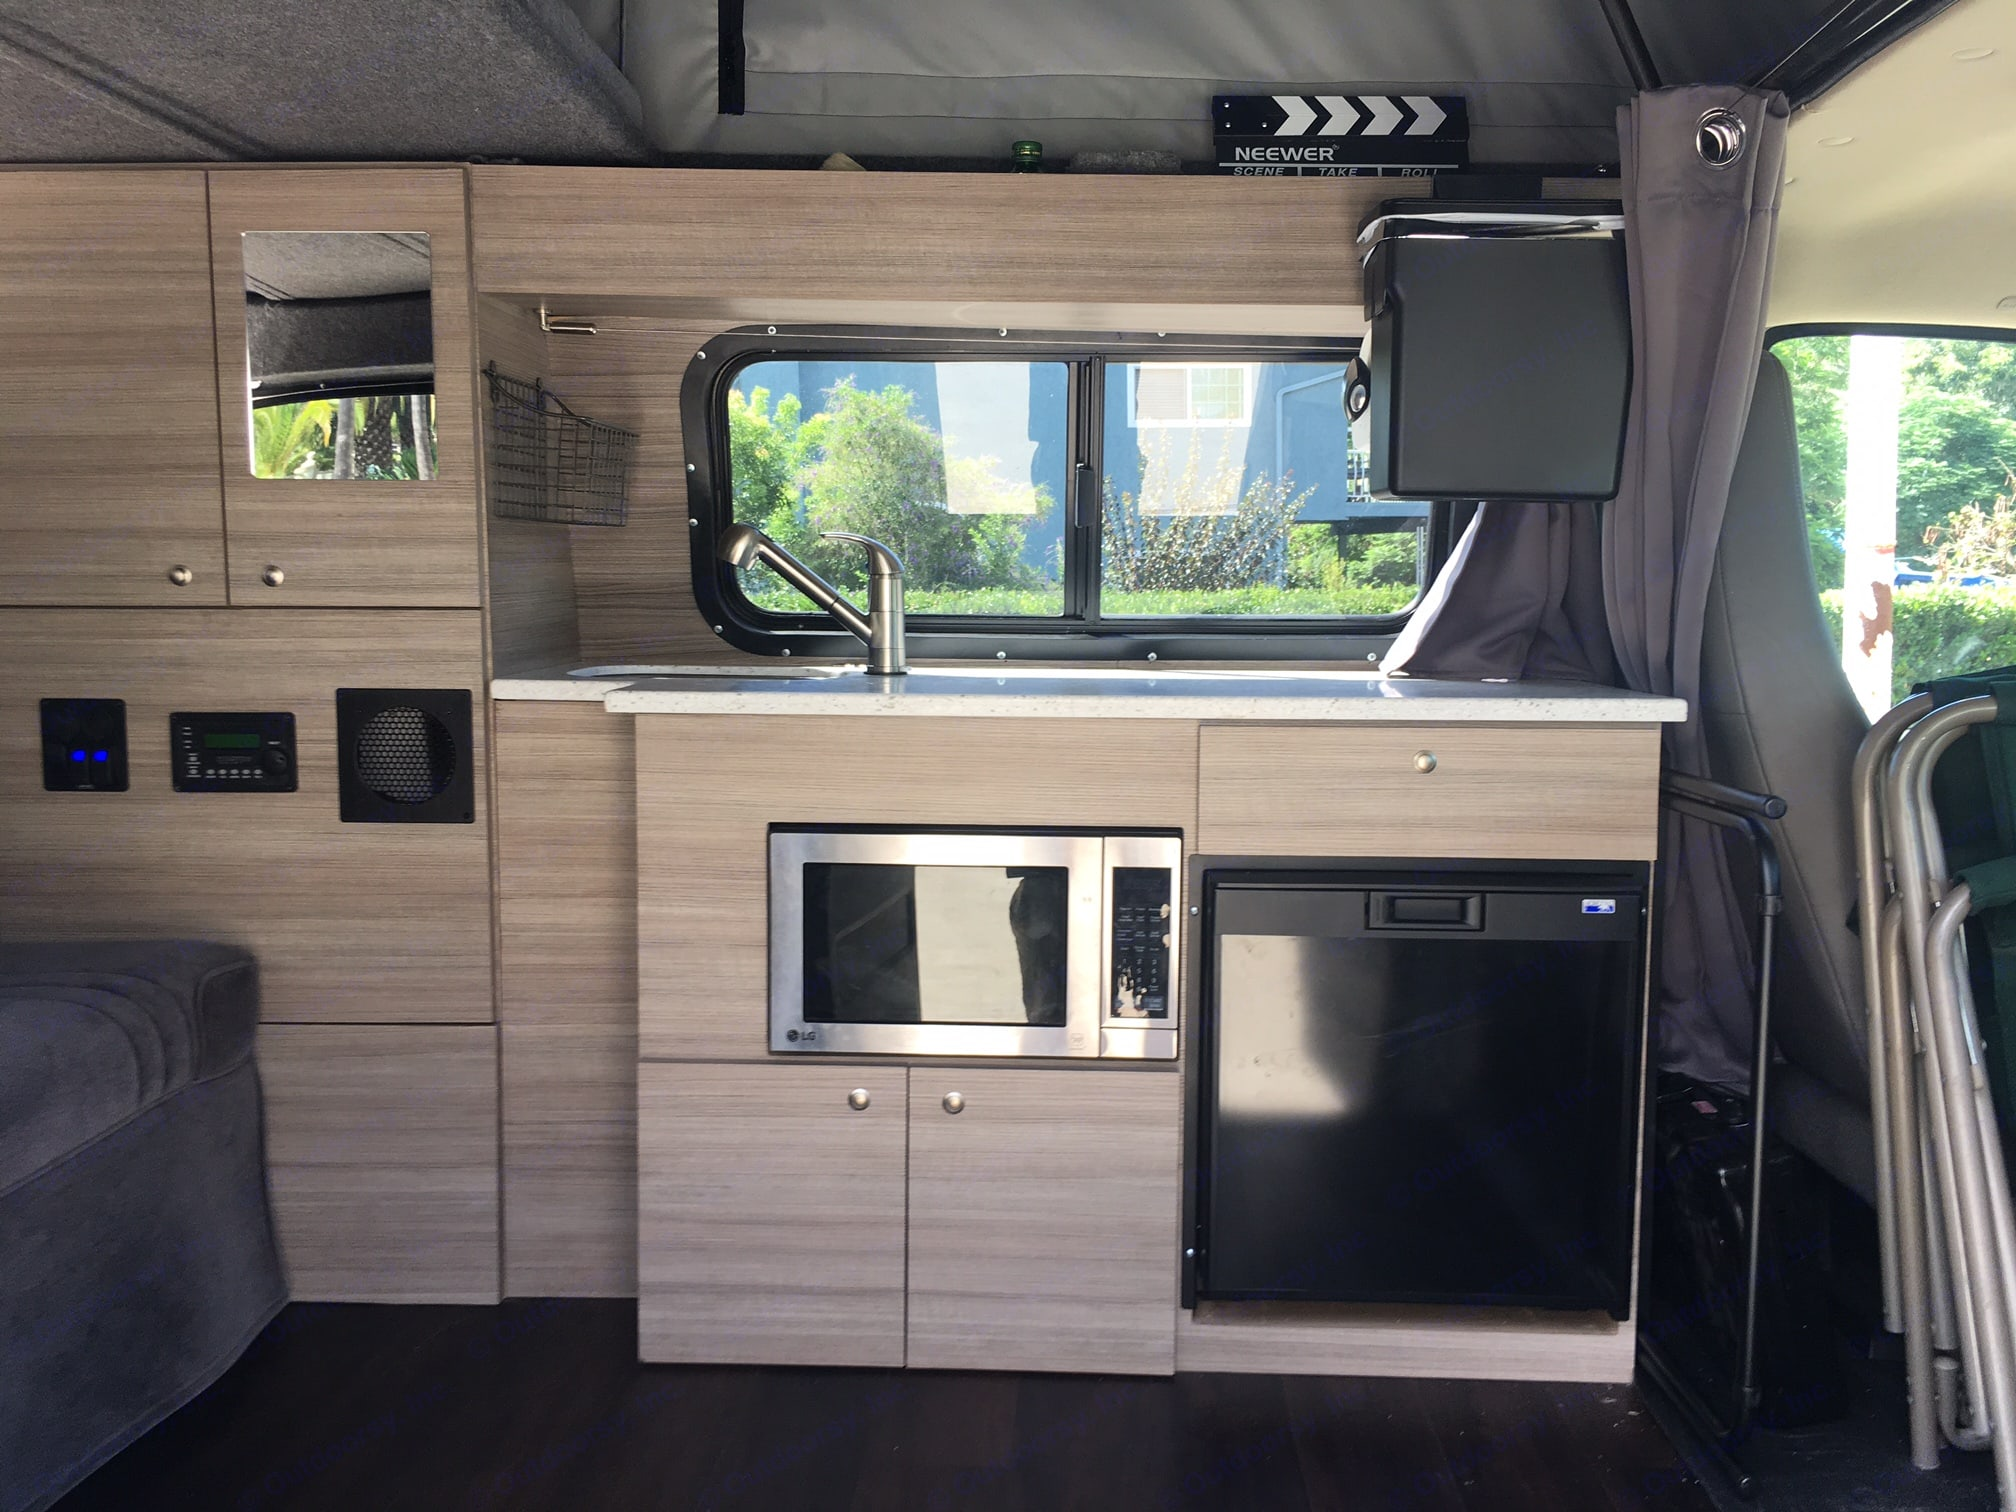 Full Kitchen Set Up! (Microwave, fridge, running water, stove, spice rack & more). Chevrolet Open Road 2014